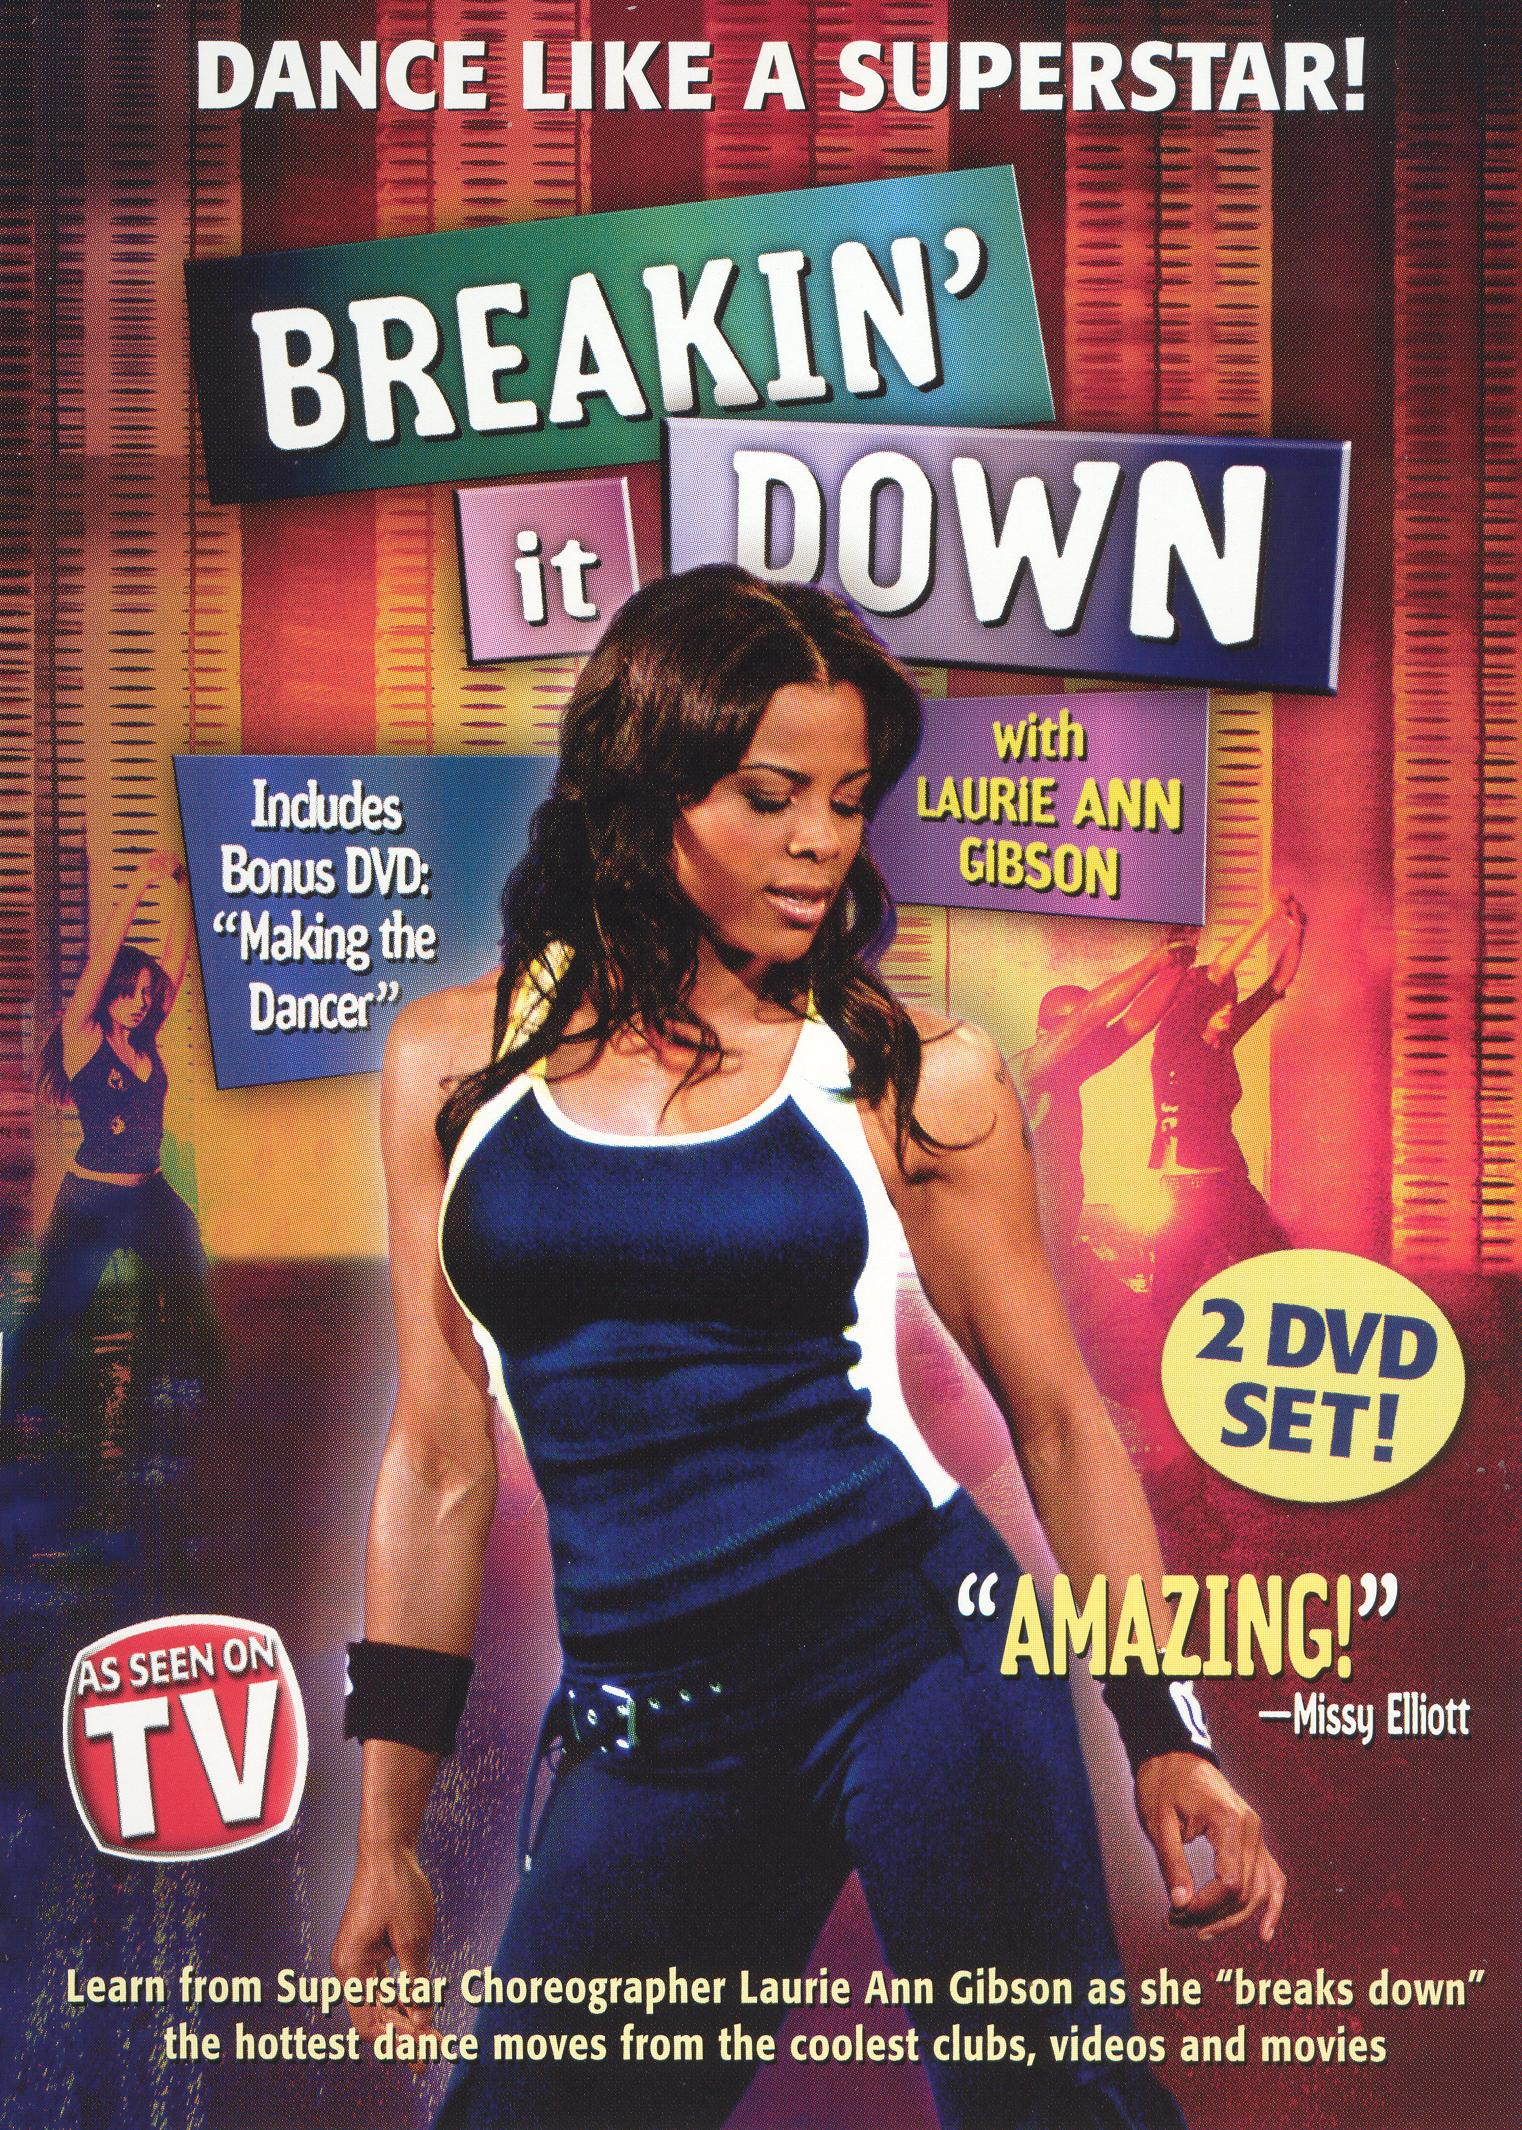 Breakin' It Down With Laurie Ann Gibson